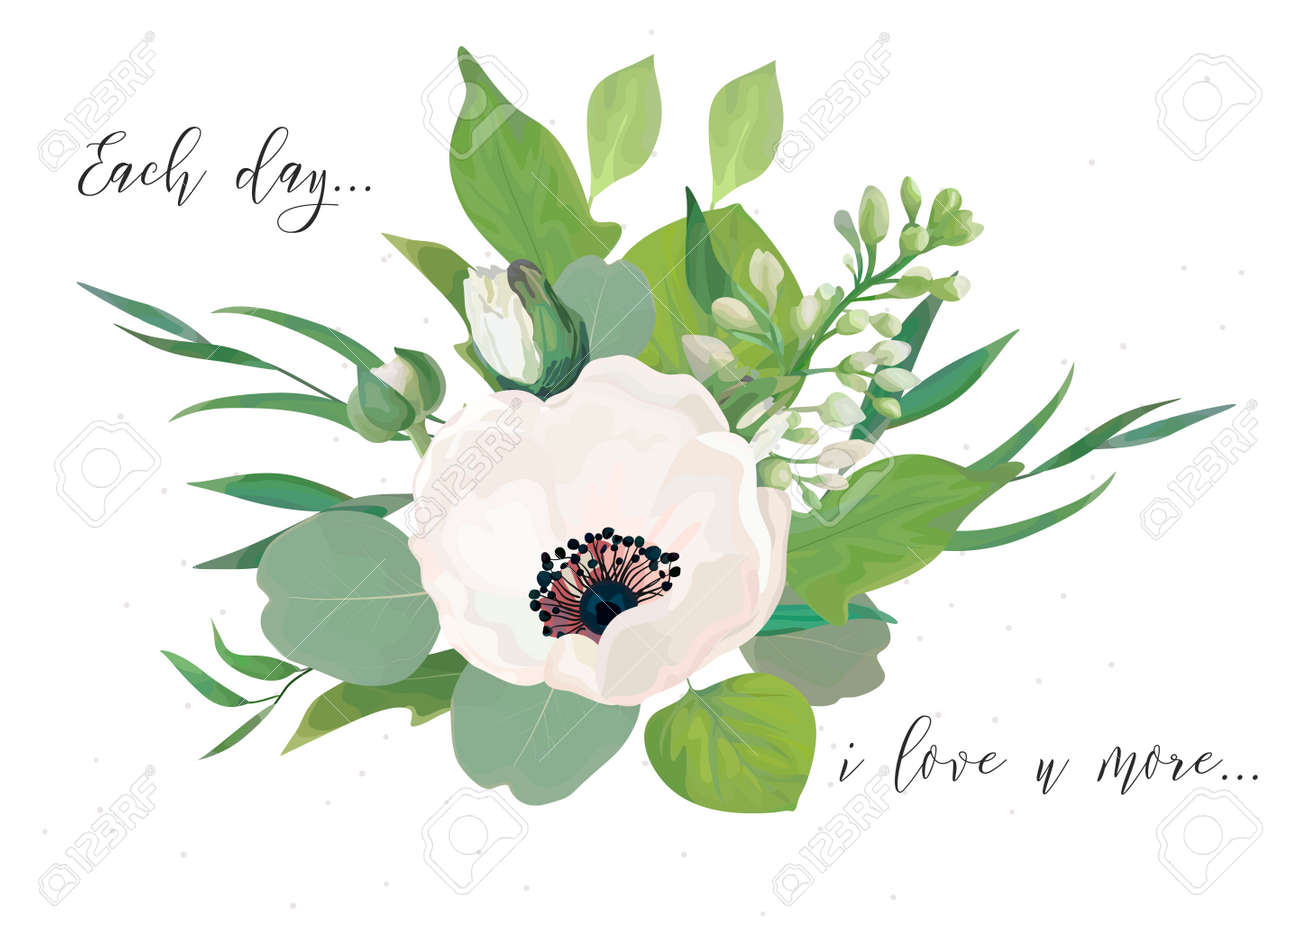 Floral Card Design With Elegant Bouquet Of Pink Anemone Flowers Royalty Free Cliparts Vectors And Stock Illustration Image 96753383